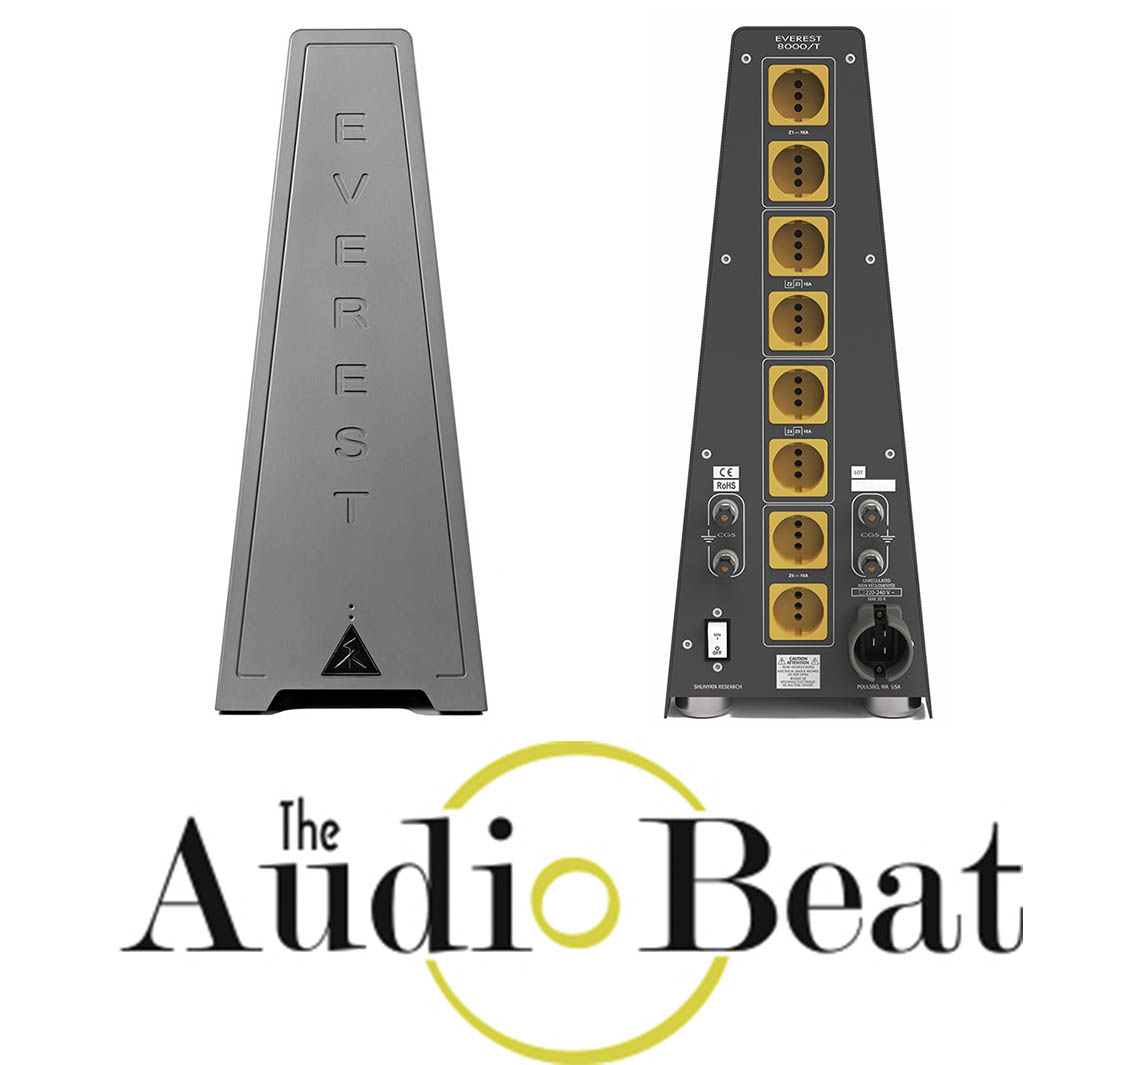 TheAudioBeeat testEverest